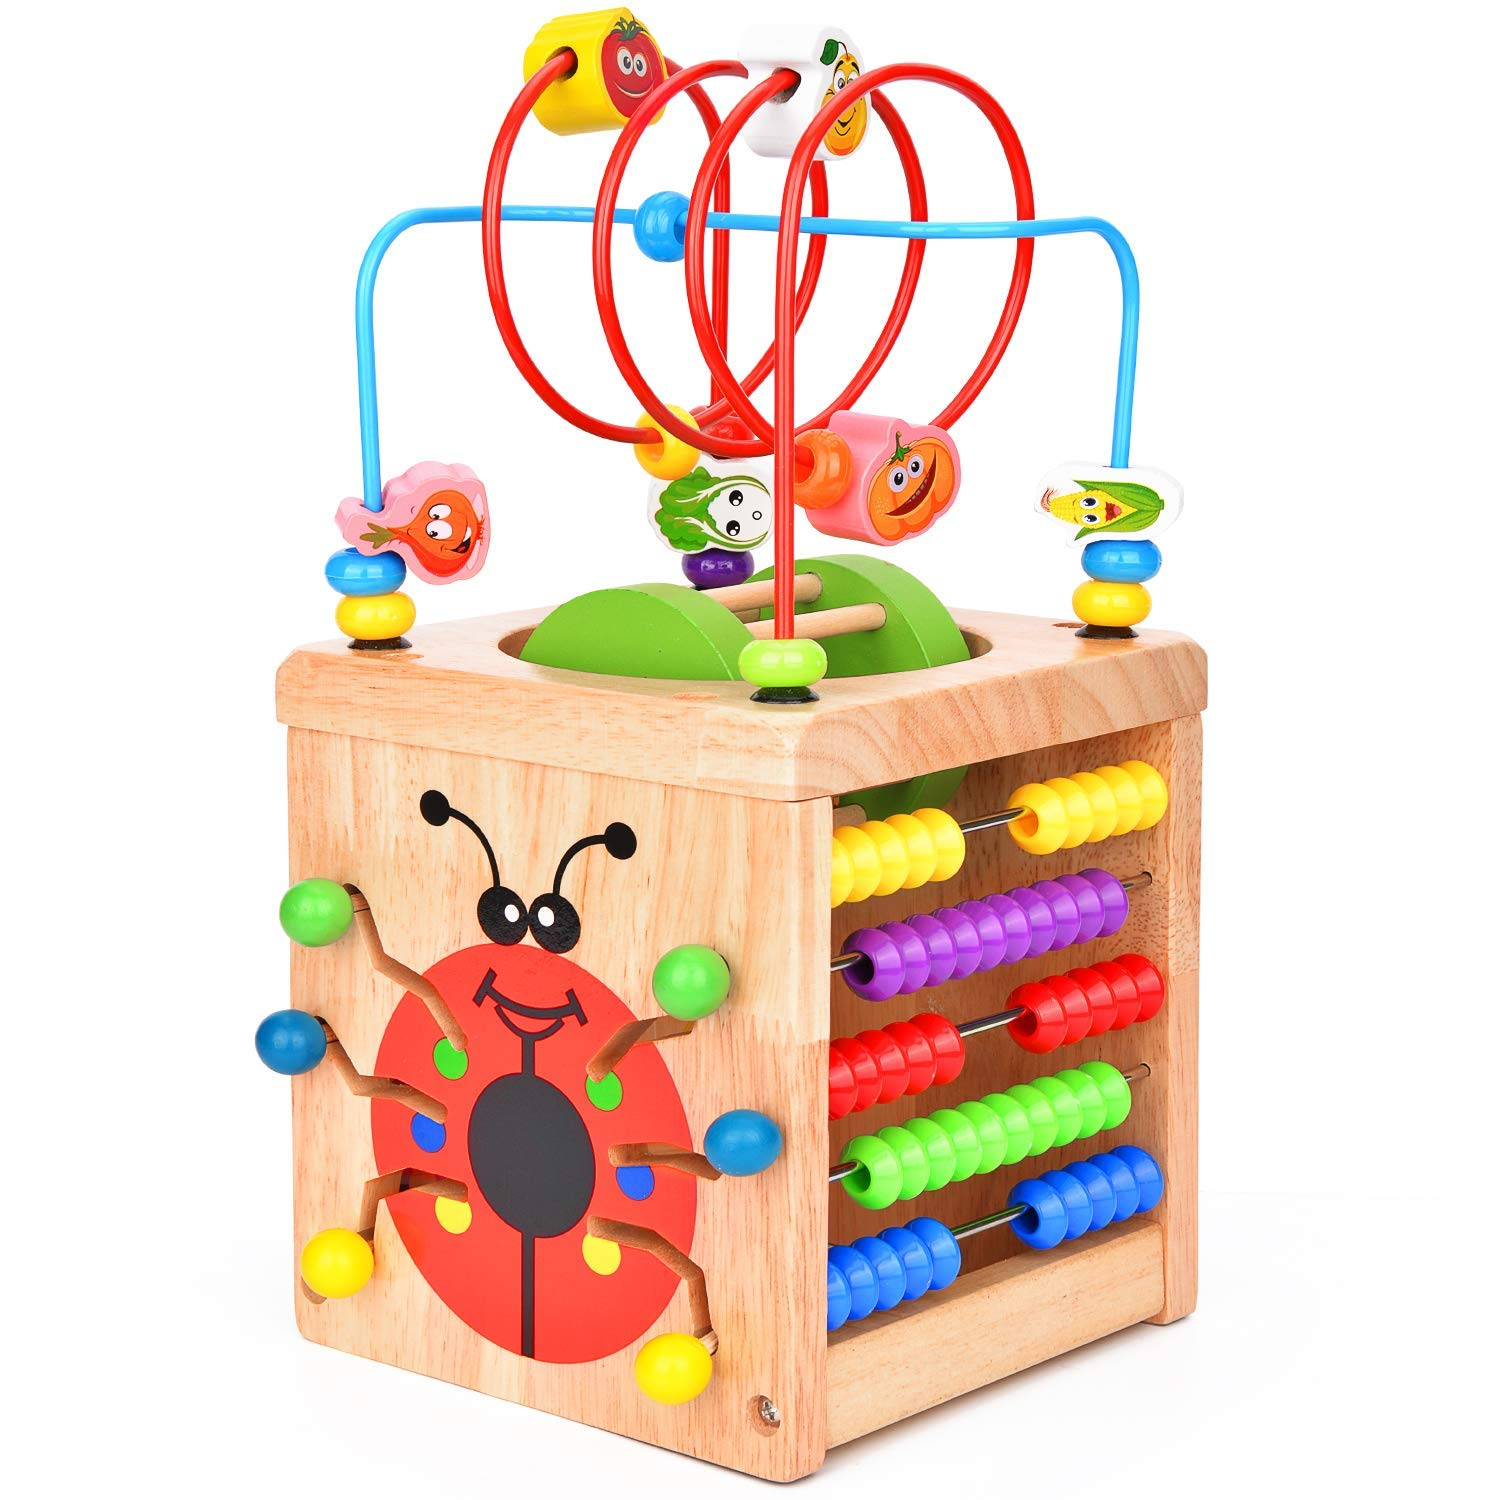 Multi-functional Wooden Activity Cube